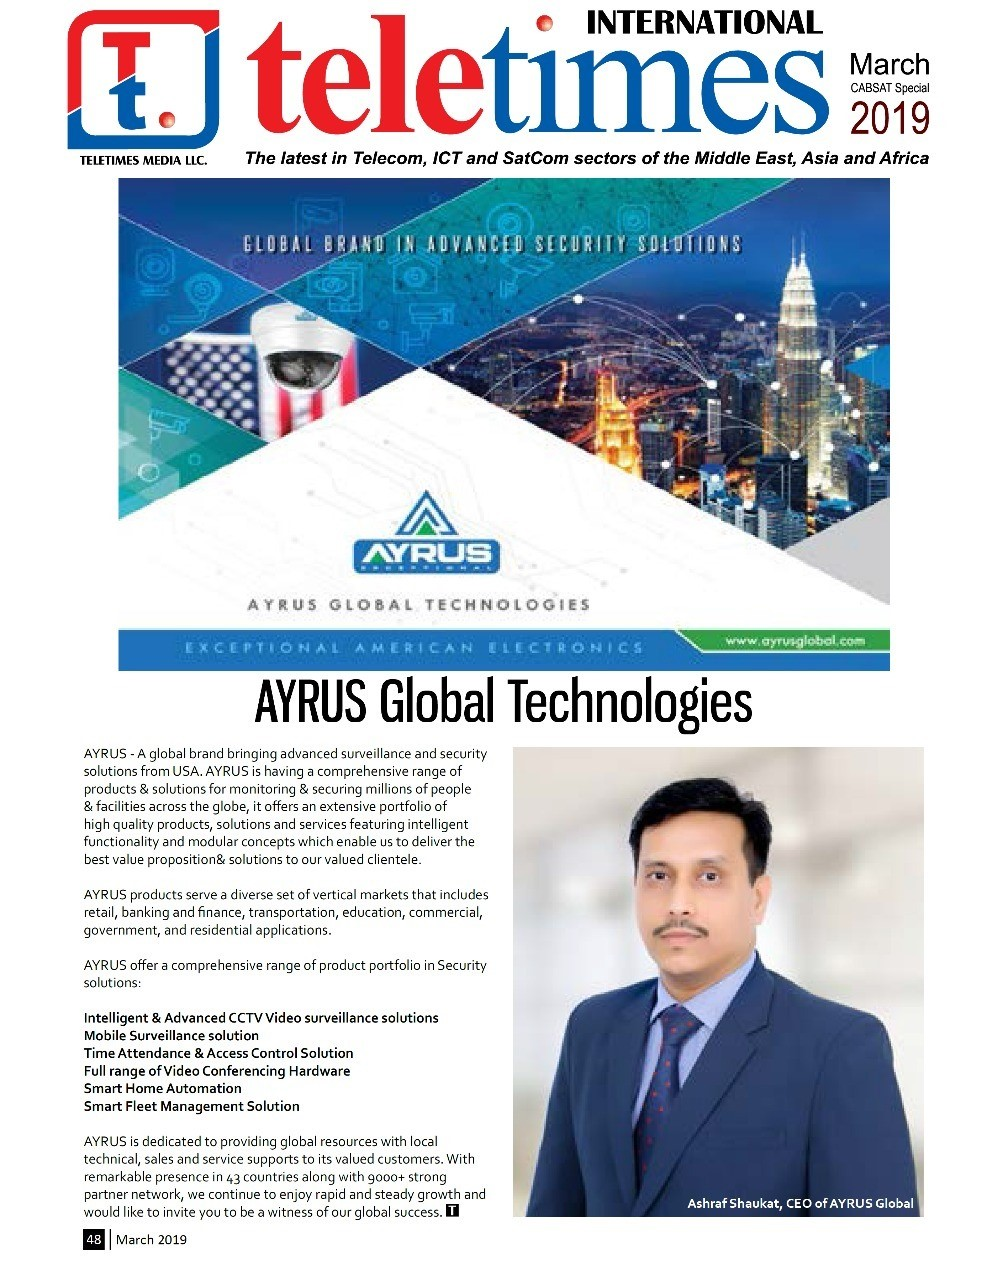 MAR 2019 MIDDLE EAST LARGEST SELLING PUBLICATION SHOWCASE AYRUS GLOBAL IN THEIR MARCH EDITION.